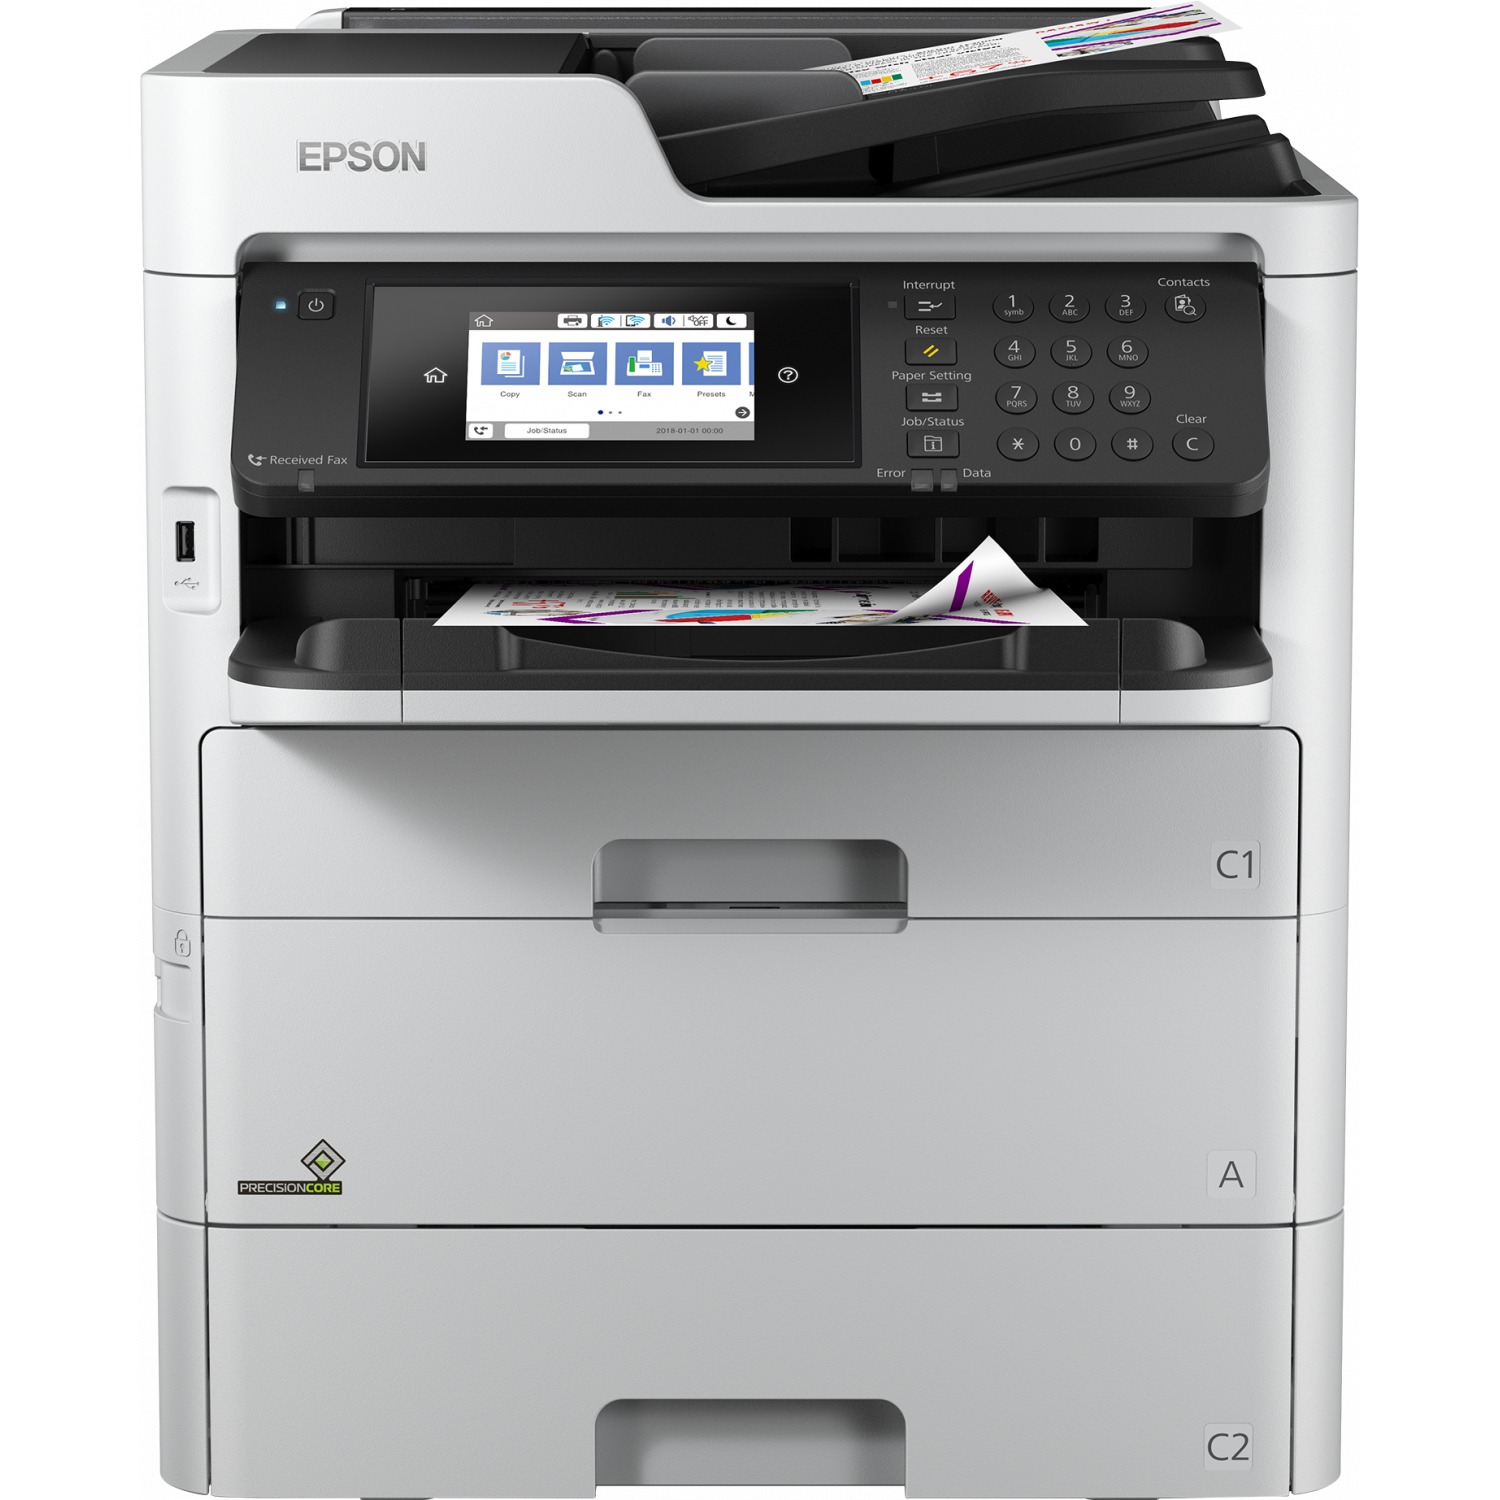 Epson WorkForce Pro WF-C579RDTWF A4 Multifunction Printer